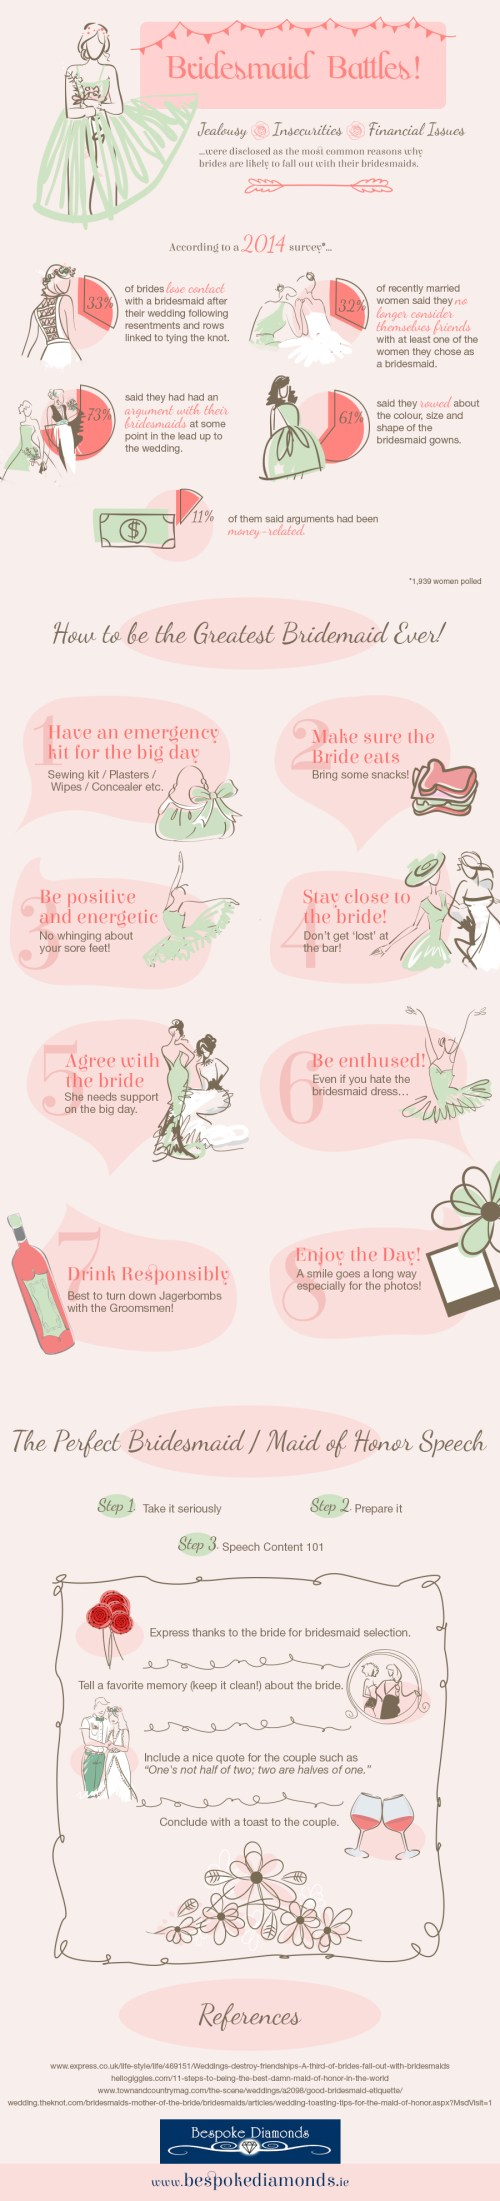 Bespoke-Bridesmaid-Battles-Infographic